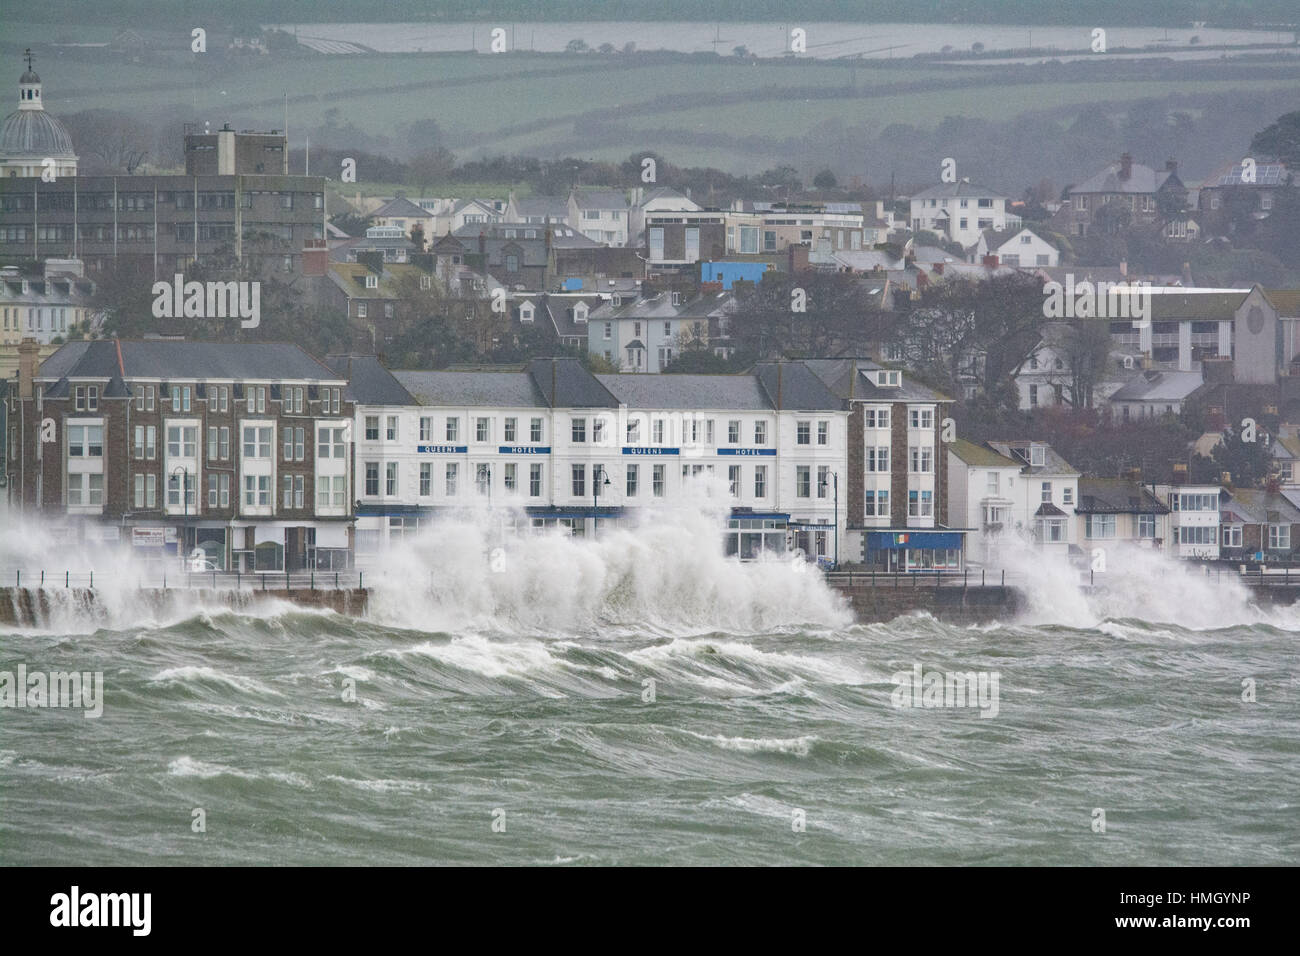 Penzance, Cornwall, UK. 3rd Feb 2017. UK Weather. Strong winds and big waves continue to batter to Cornwall coast, Stock Photo